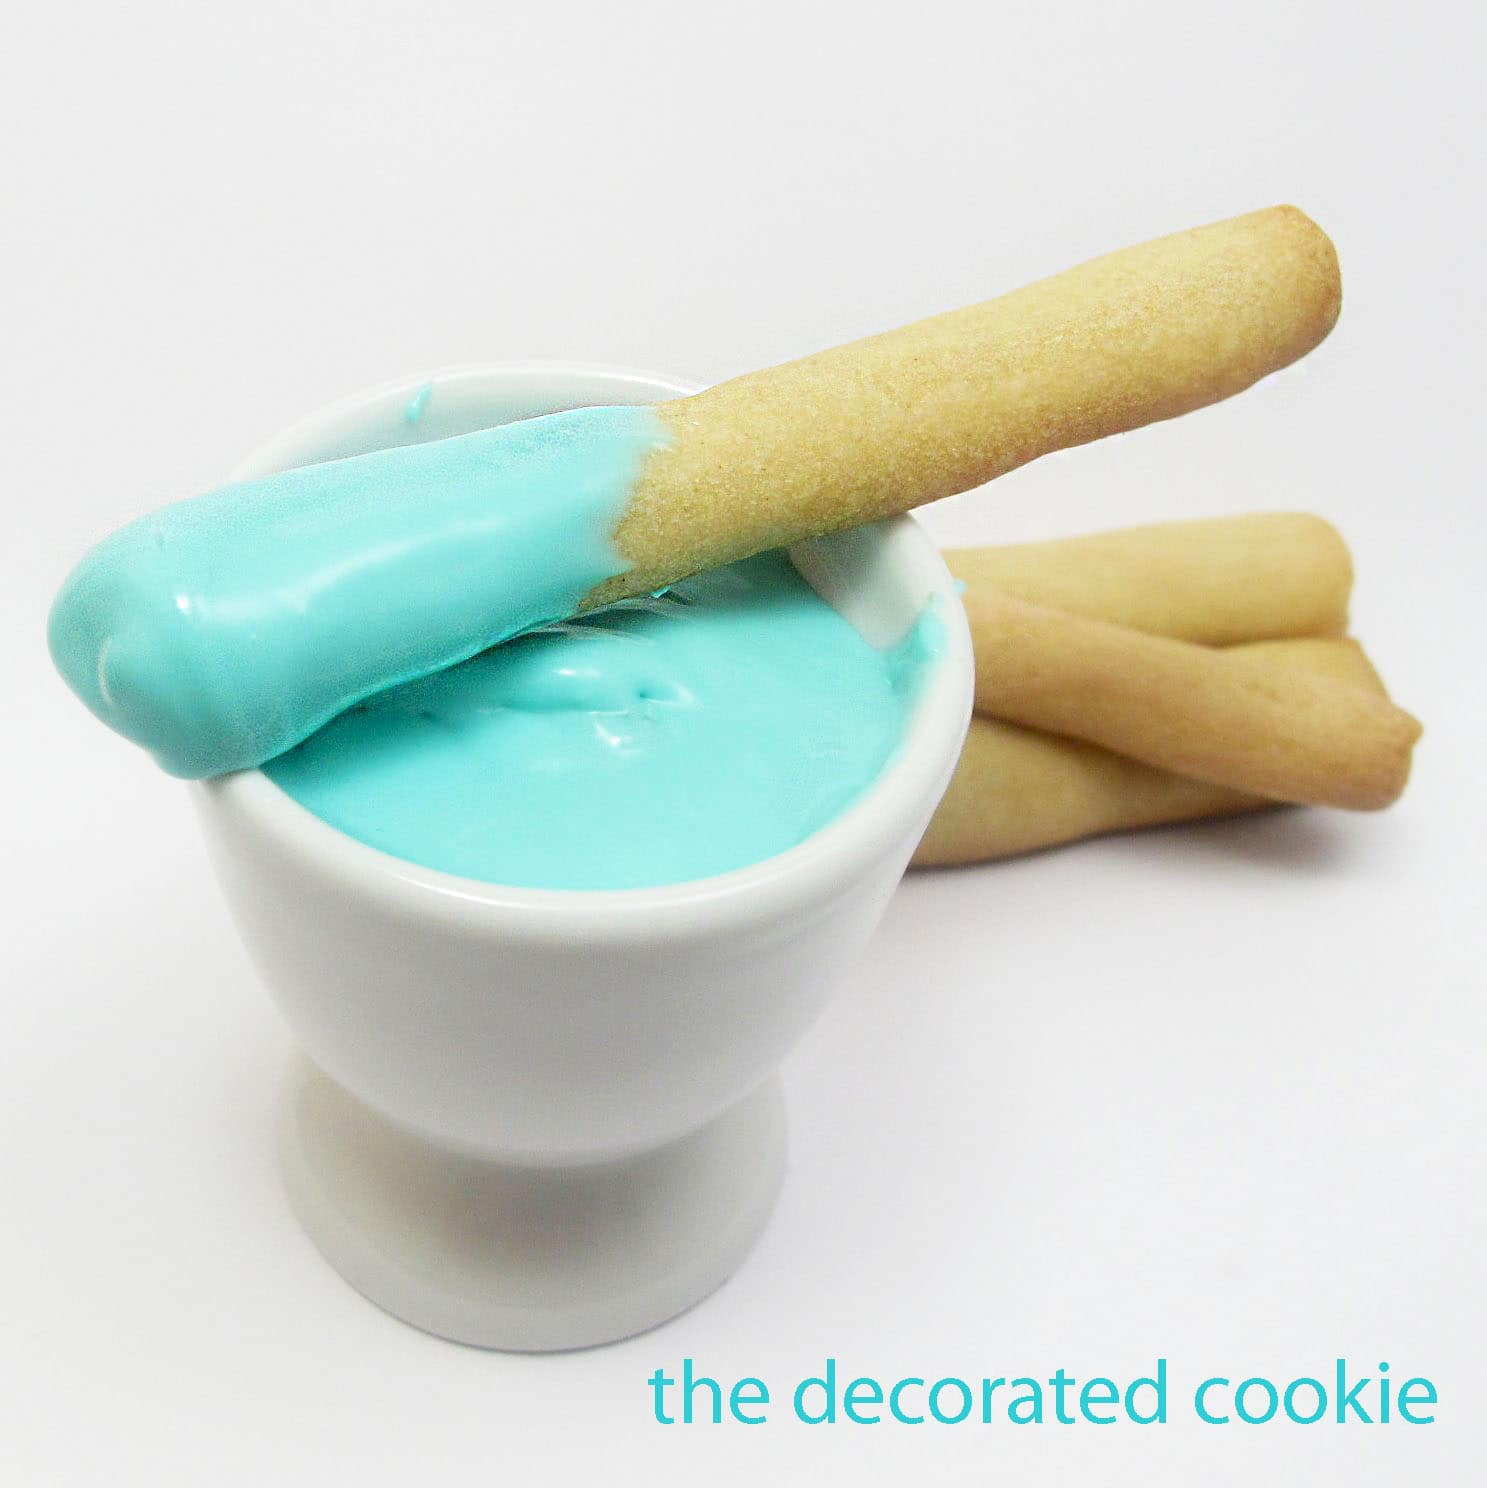 cookie sticks n' dip - The Decorated CookieThe Decorated Cookie